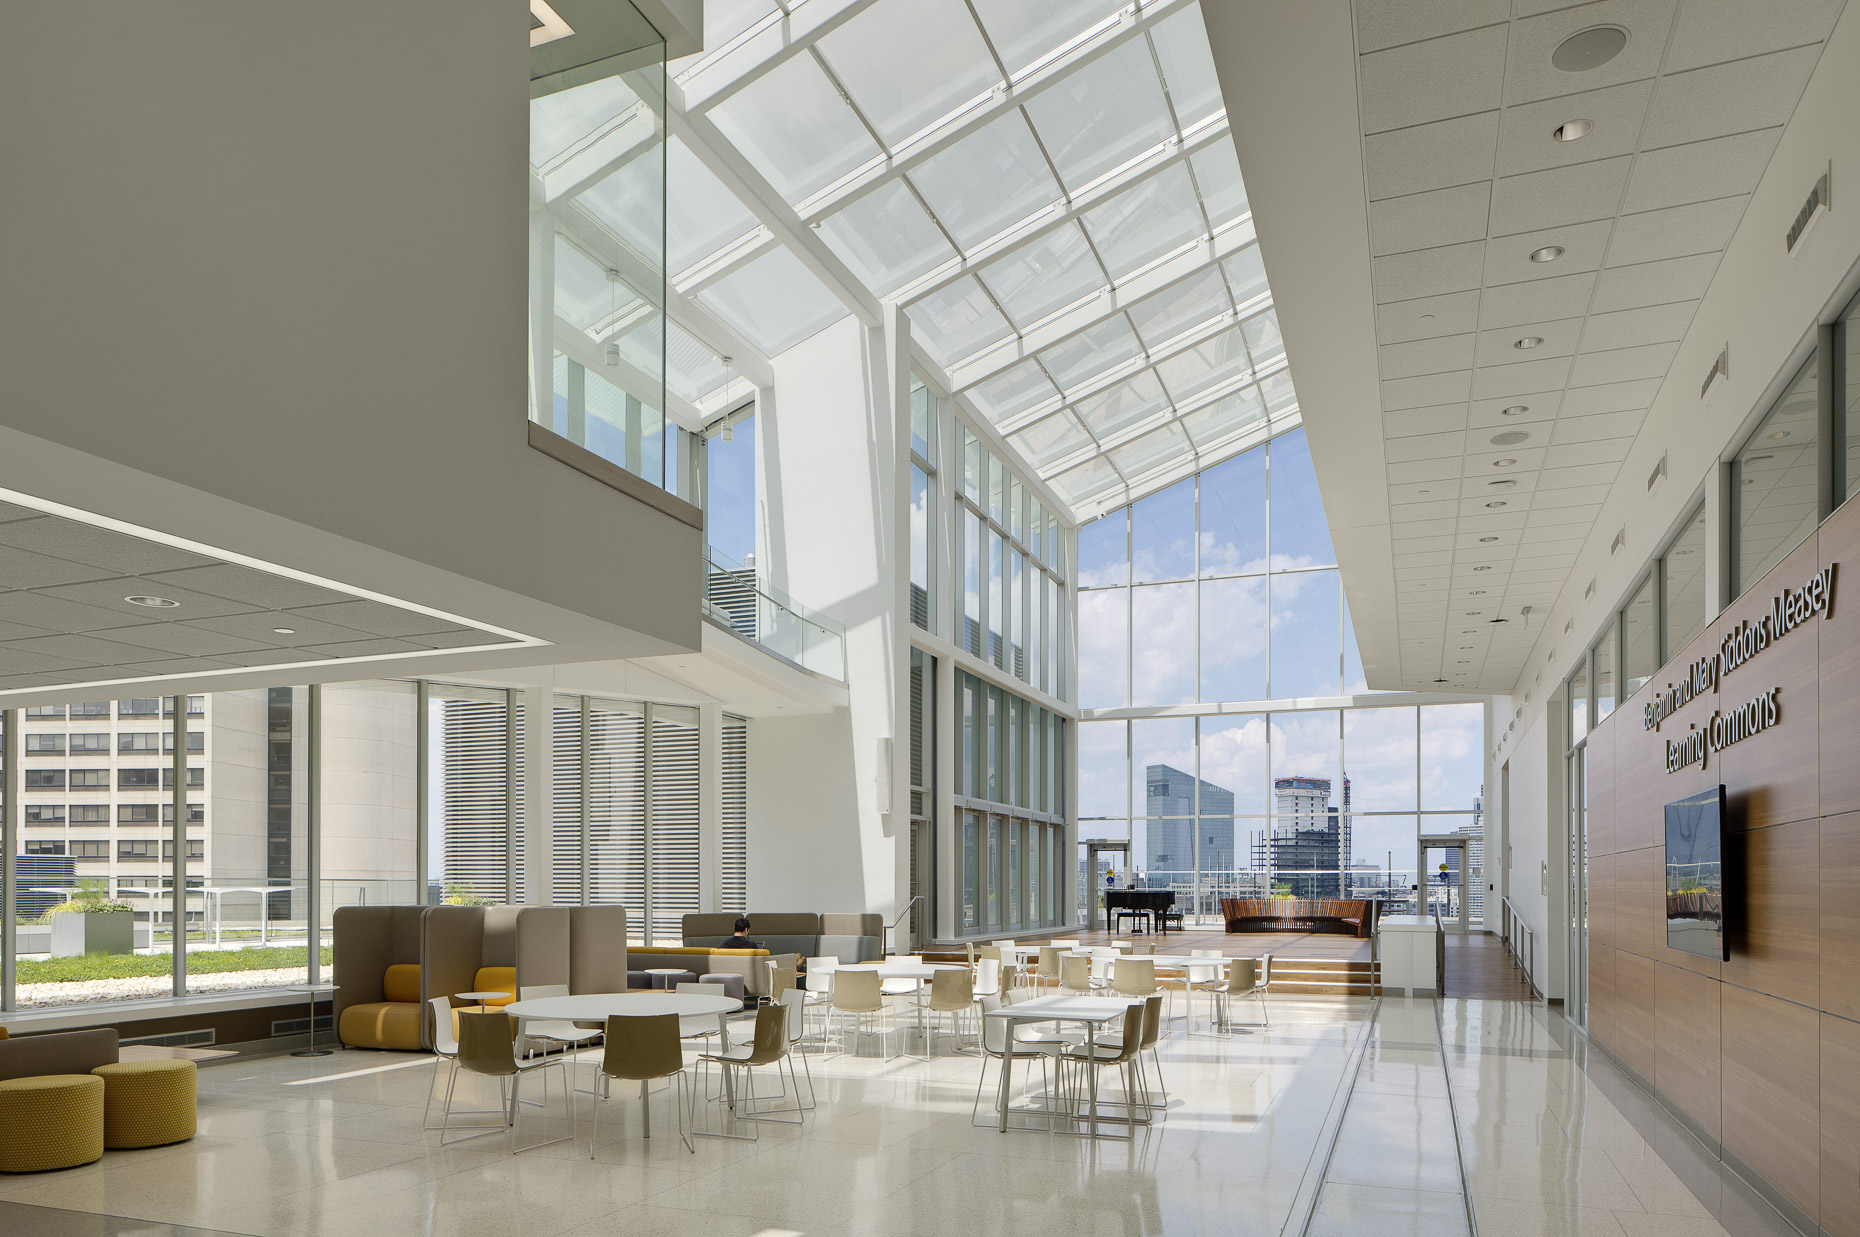 UPenn Jordan Medical Education Center by Rafael Viñoly Architects, PC photographed by Brad Feinknopf based in Columbus, Ohio